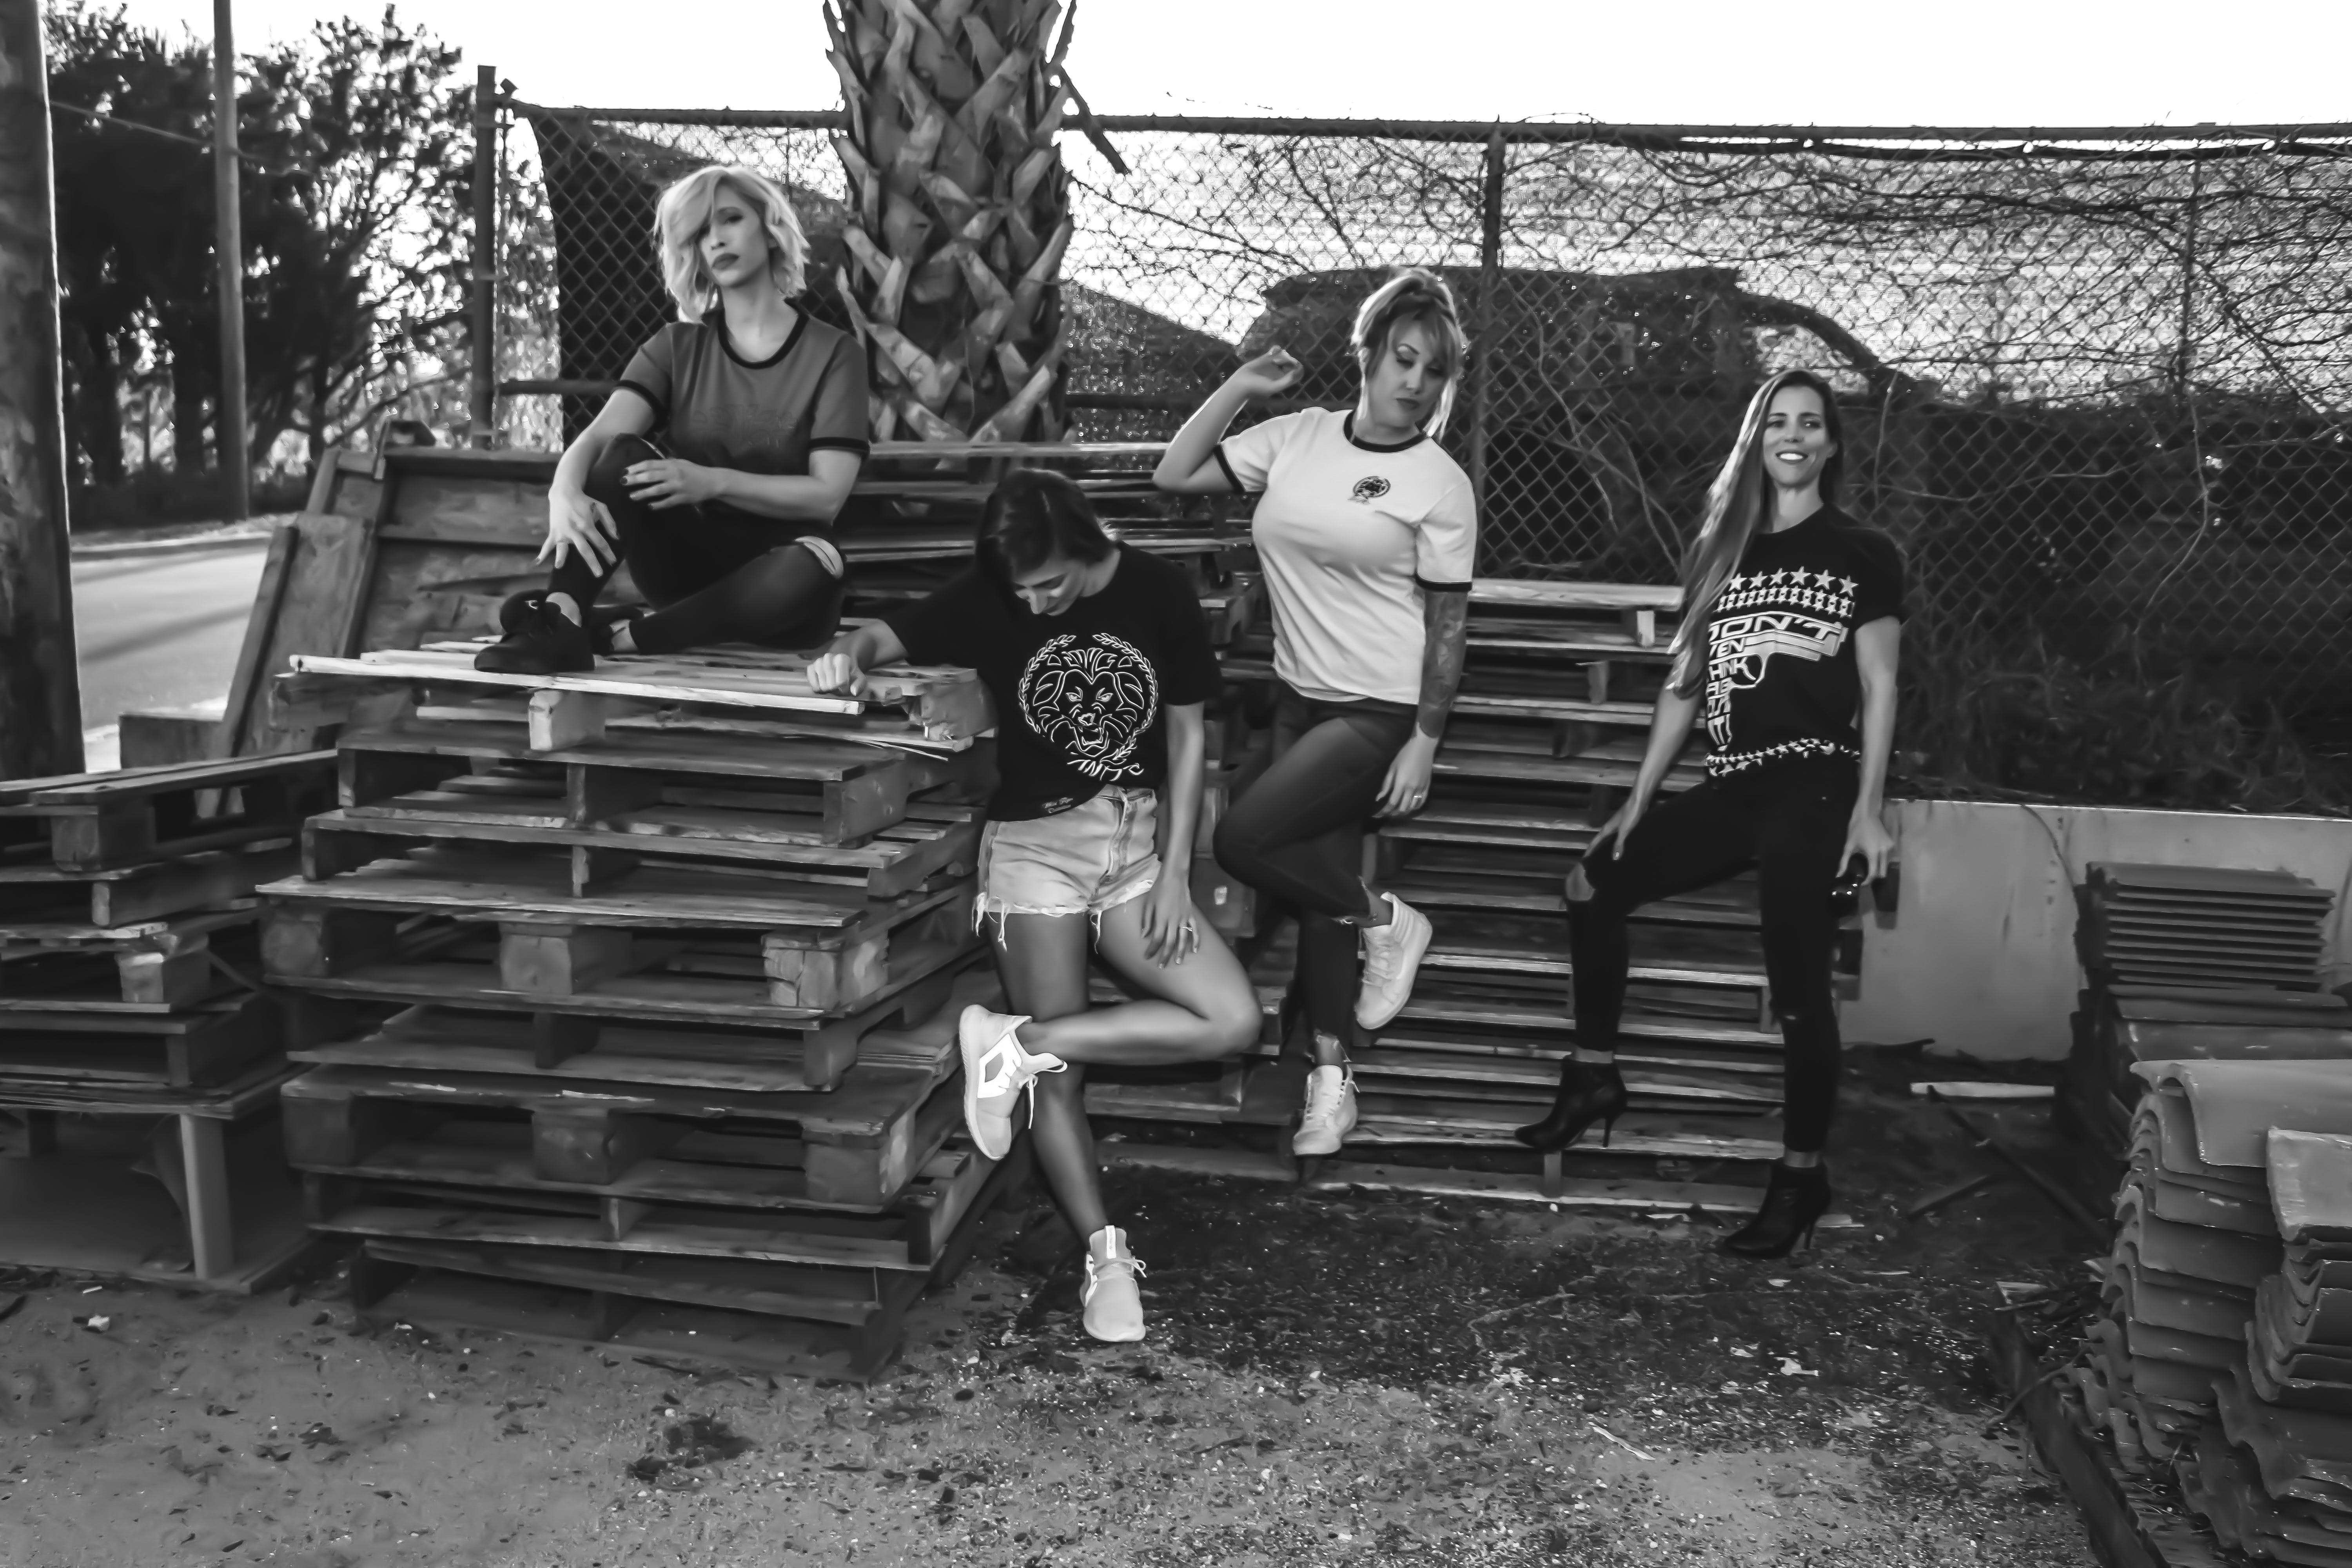 Grayscale Photo of Four Women on Wooden Pallets